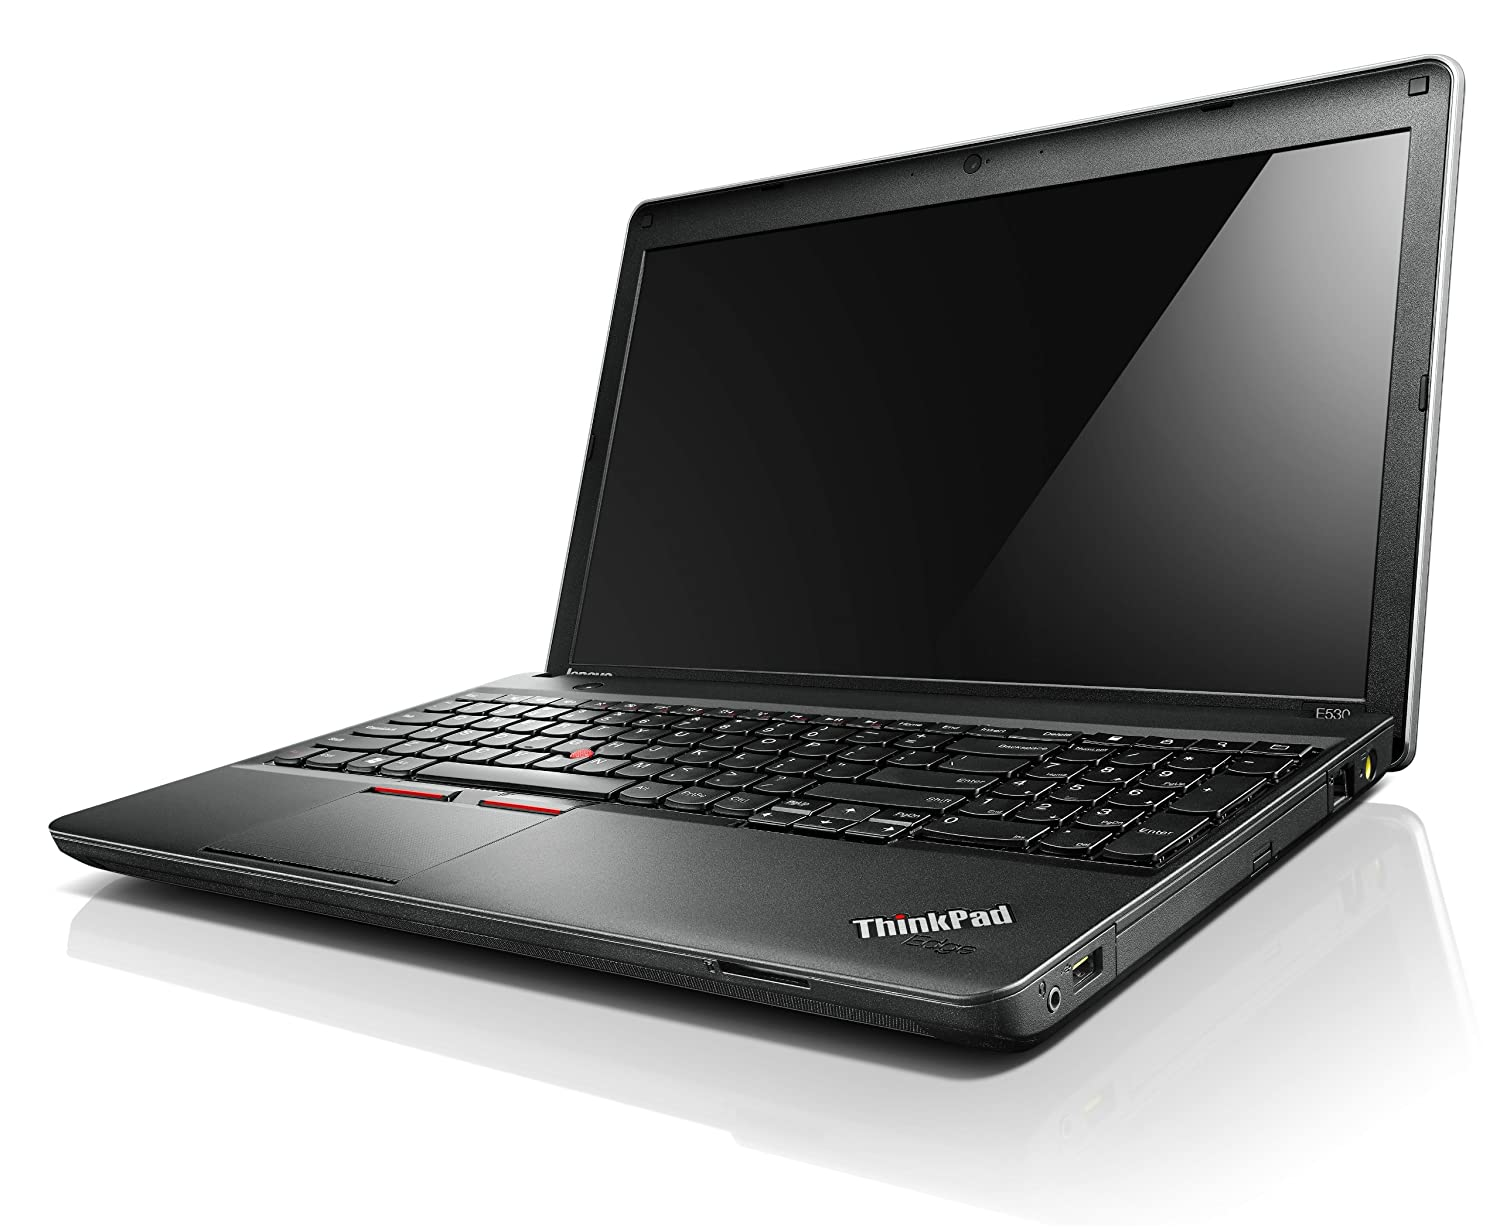 Lenovo ThinkPad Edge E535 Wireless WAN Drivers for Mac Download